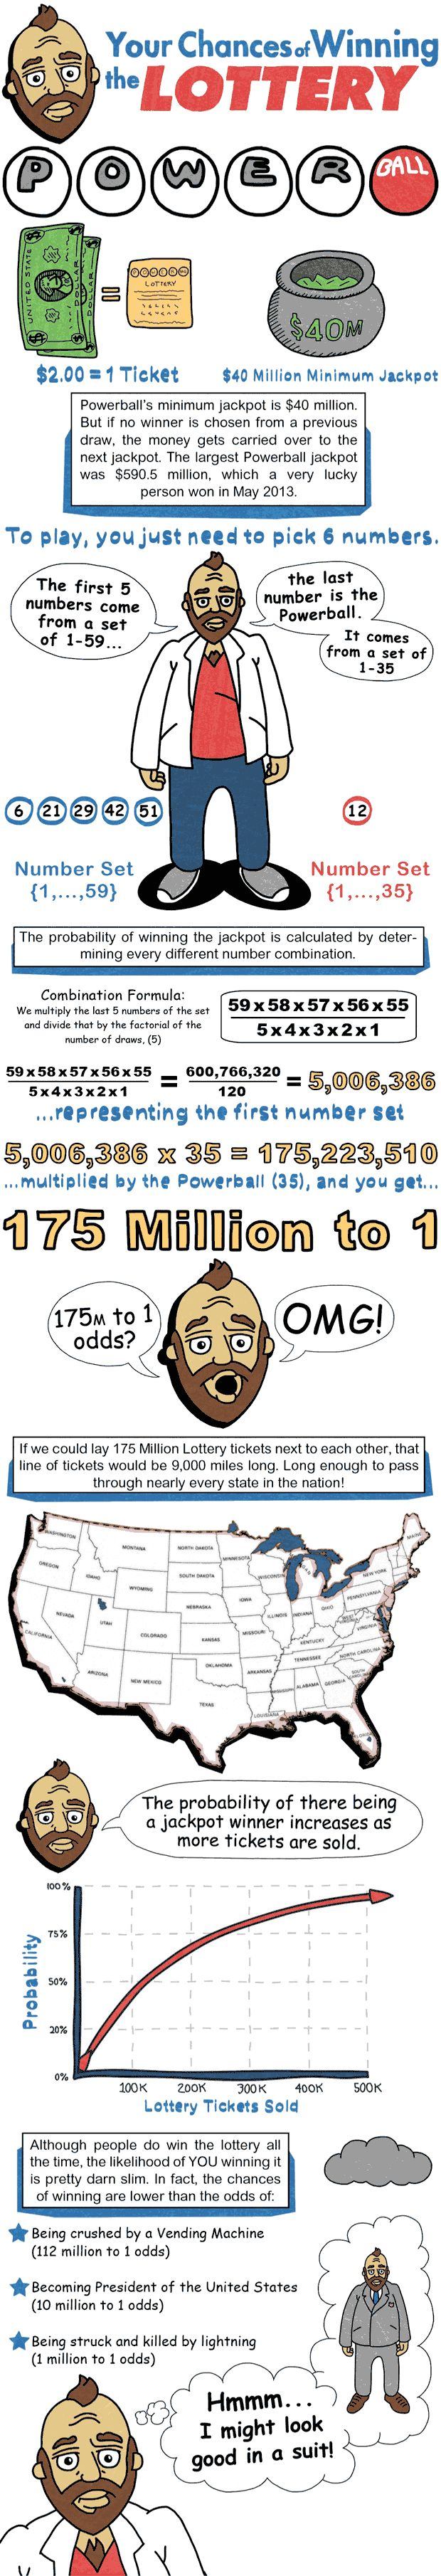 What Are Your Odds for Winning the Lottery | The Lowdown